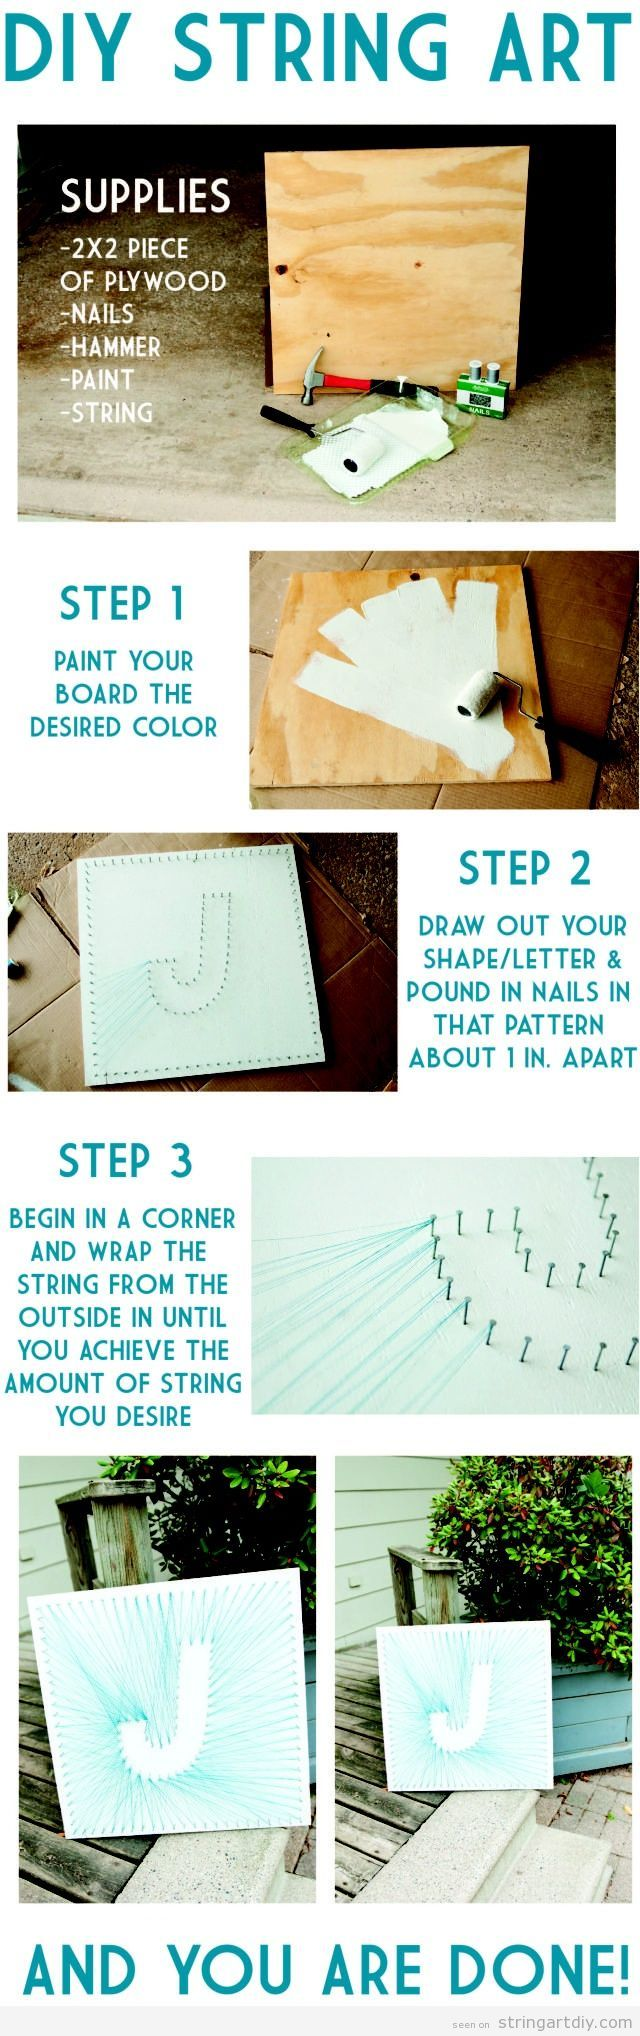 J letter String Art, step by step (tutorial)   String Art DIY   Free patterns and templates to make your own String Art #stringart